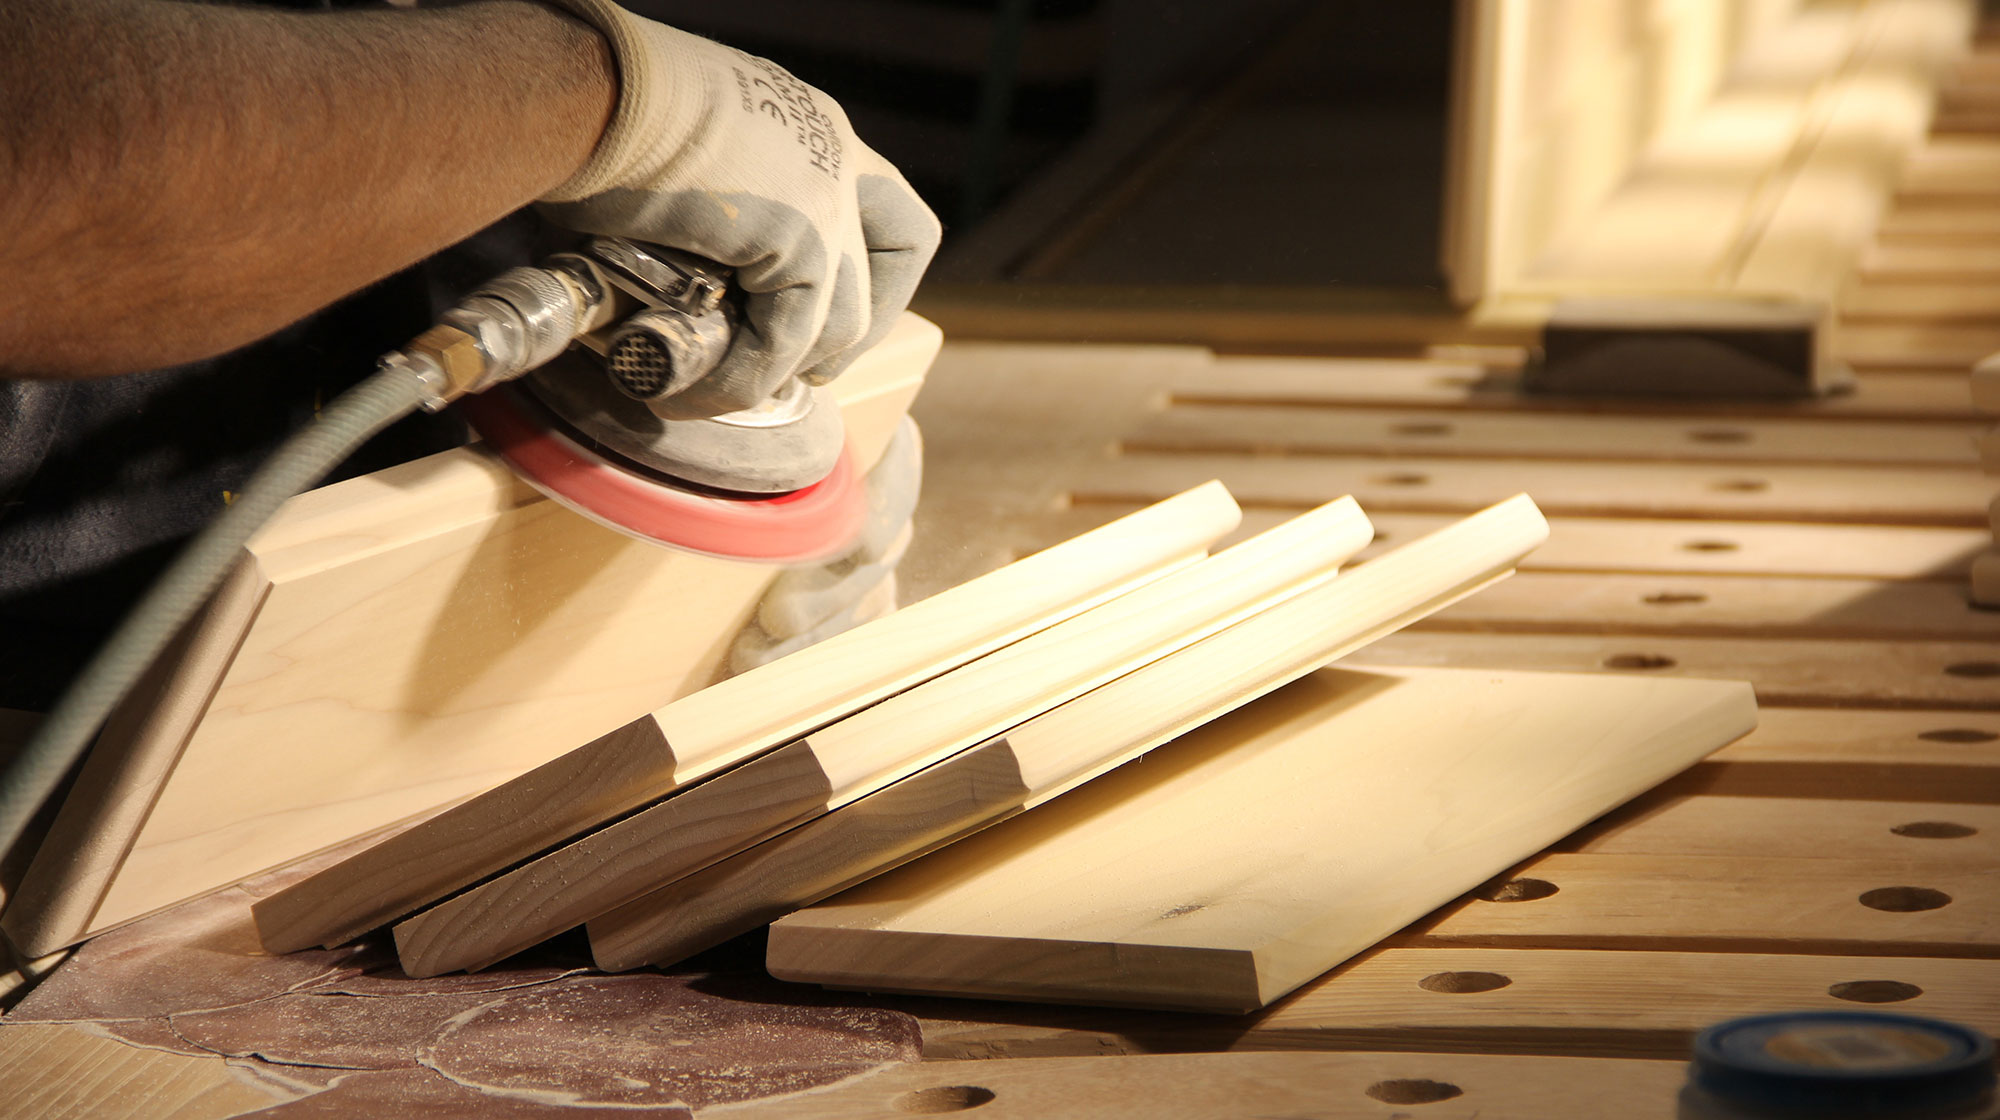 Learn about Woodmont Cabinetry craftsmanship